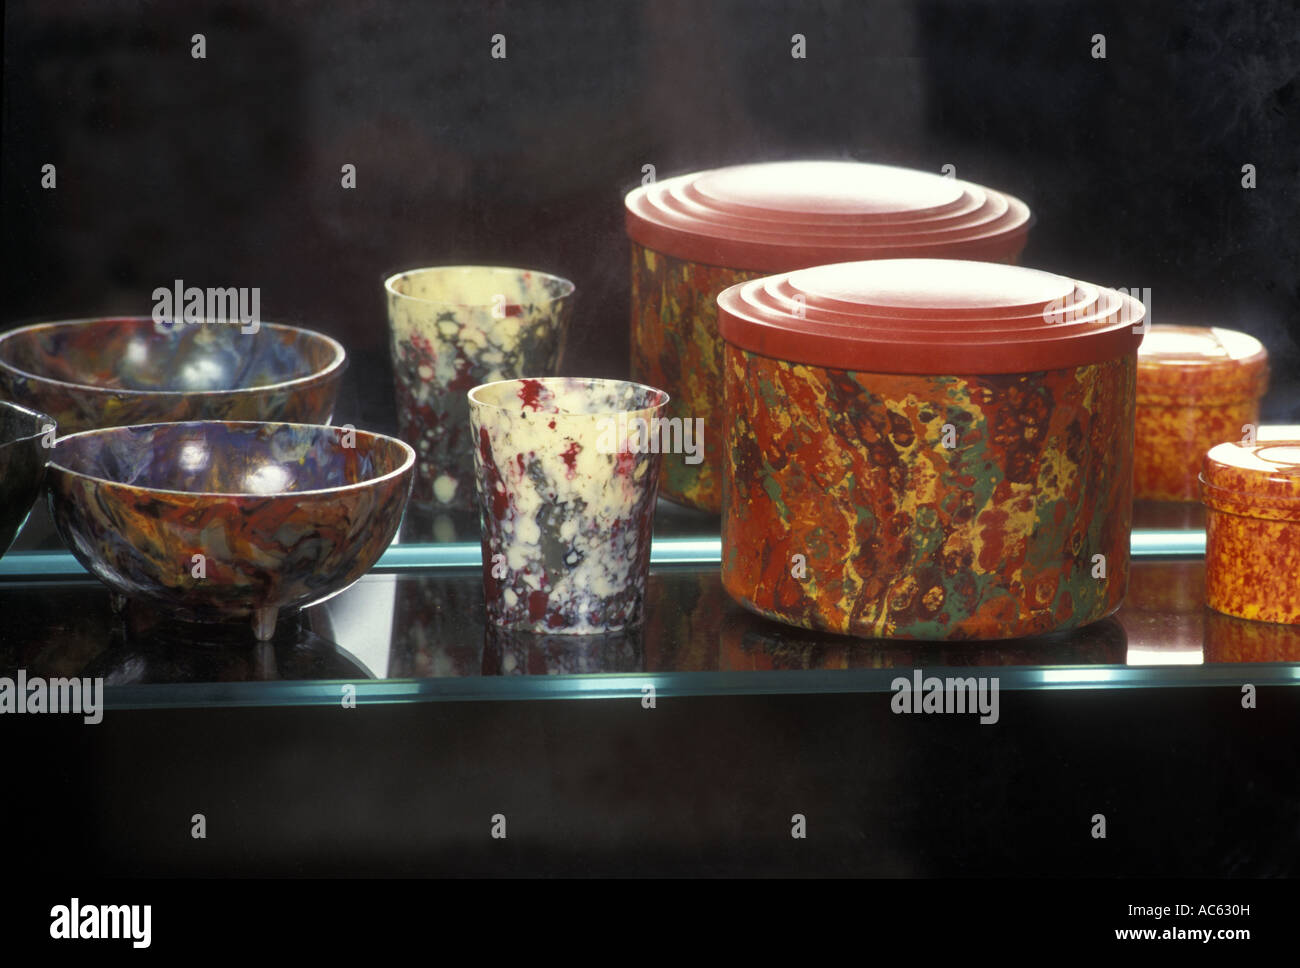 Bakelite products on display at the Bakelite museum in Somerset - Stock Image